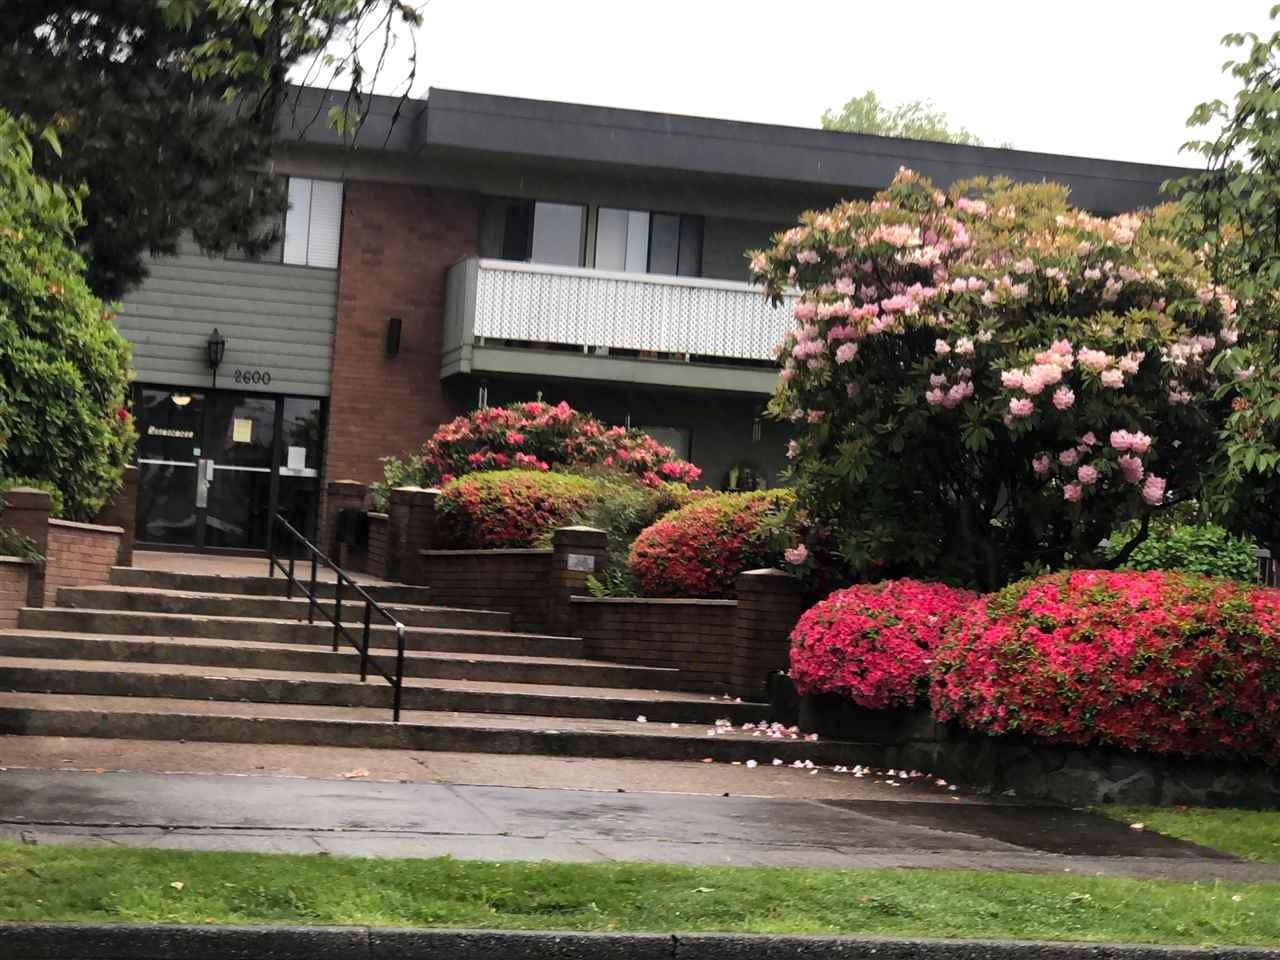 Main Photo: 106 2600 E 49TH Avenue in Vancouver: Killarney VE Townhouse for sale (Vancouver East)  : MLS®# R2587632